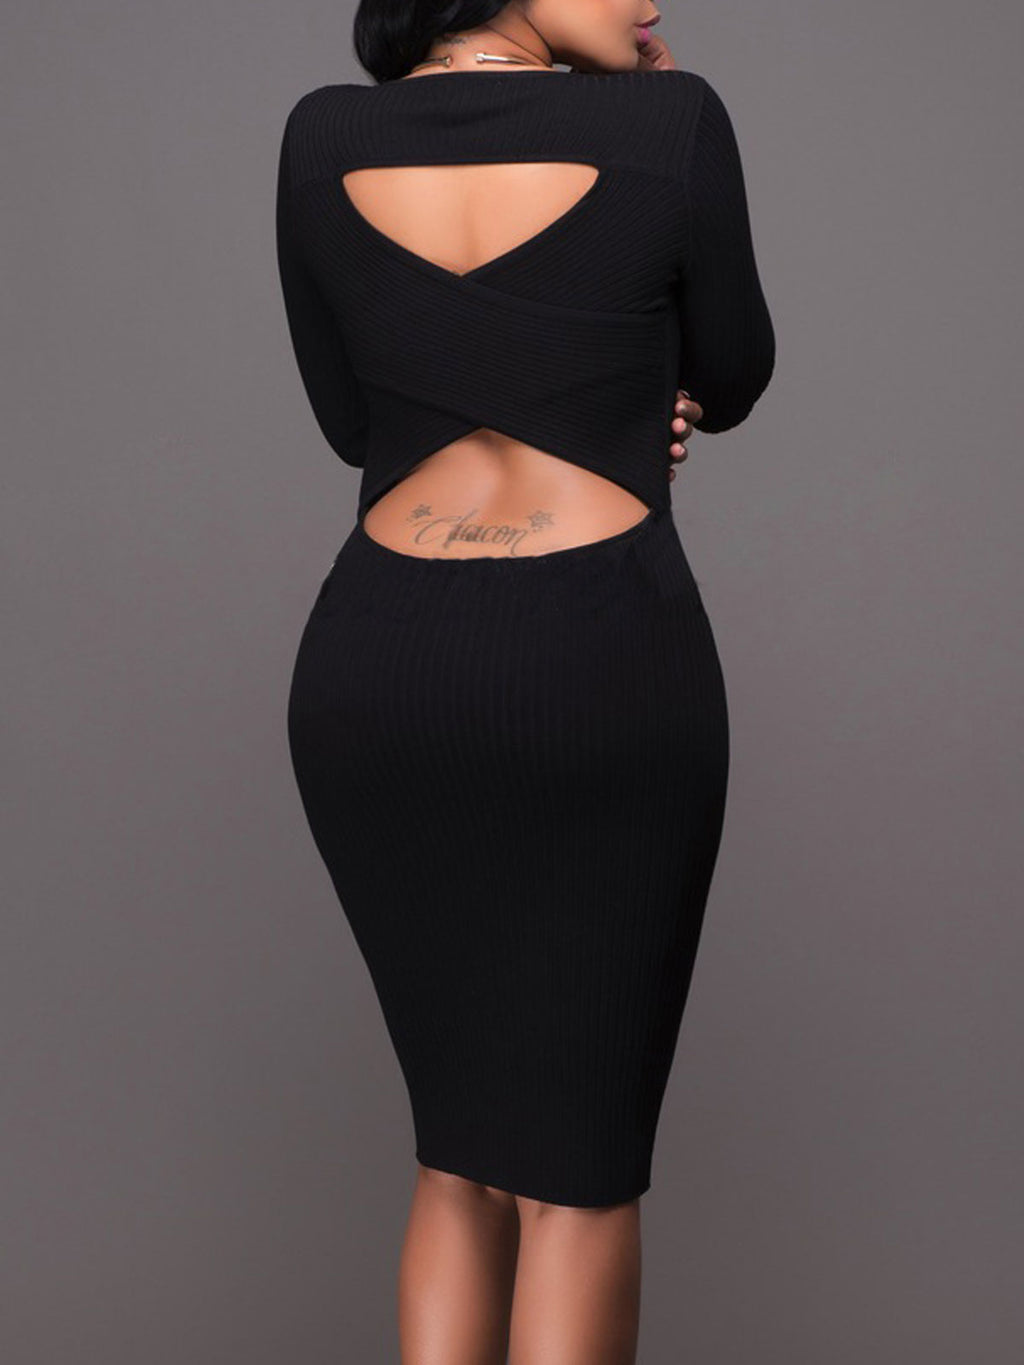 Sexy Long Sleeve Casual Basic Knitted Hollow Sheath Party Fashion Bodycon Dress Rikkishop